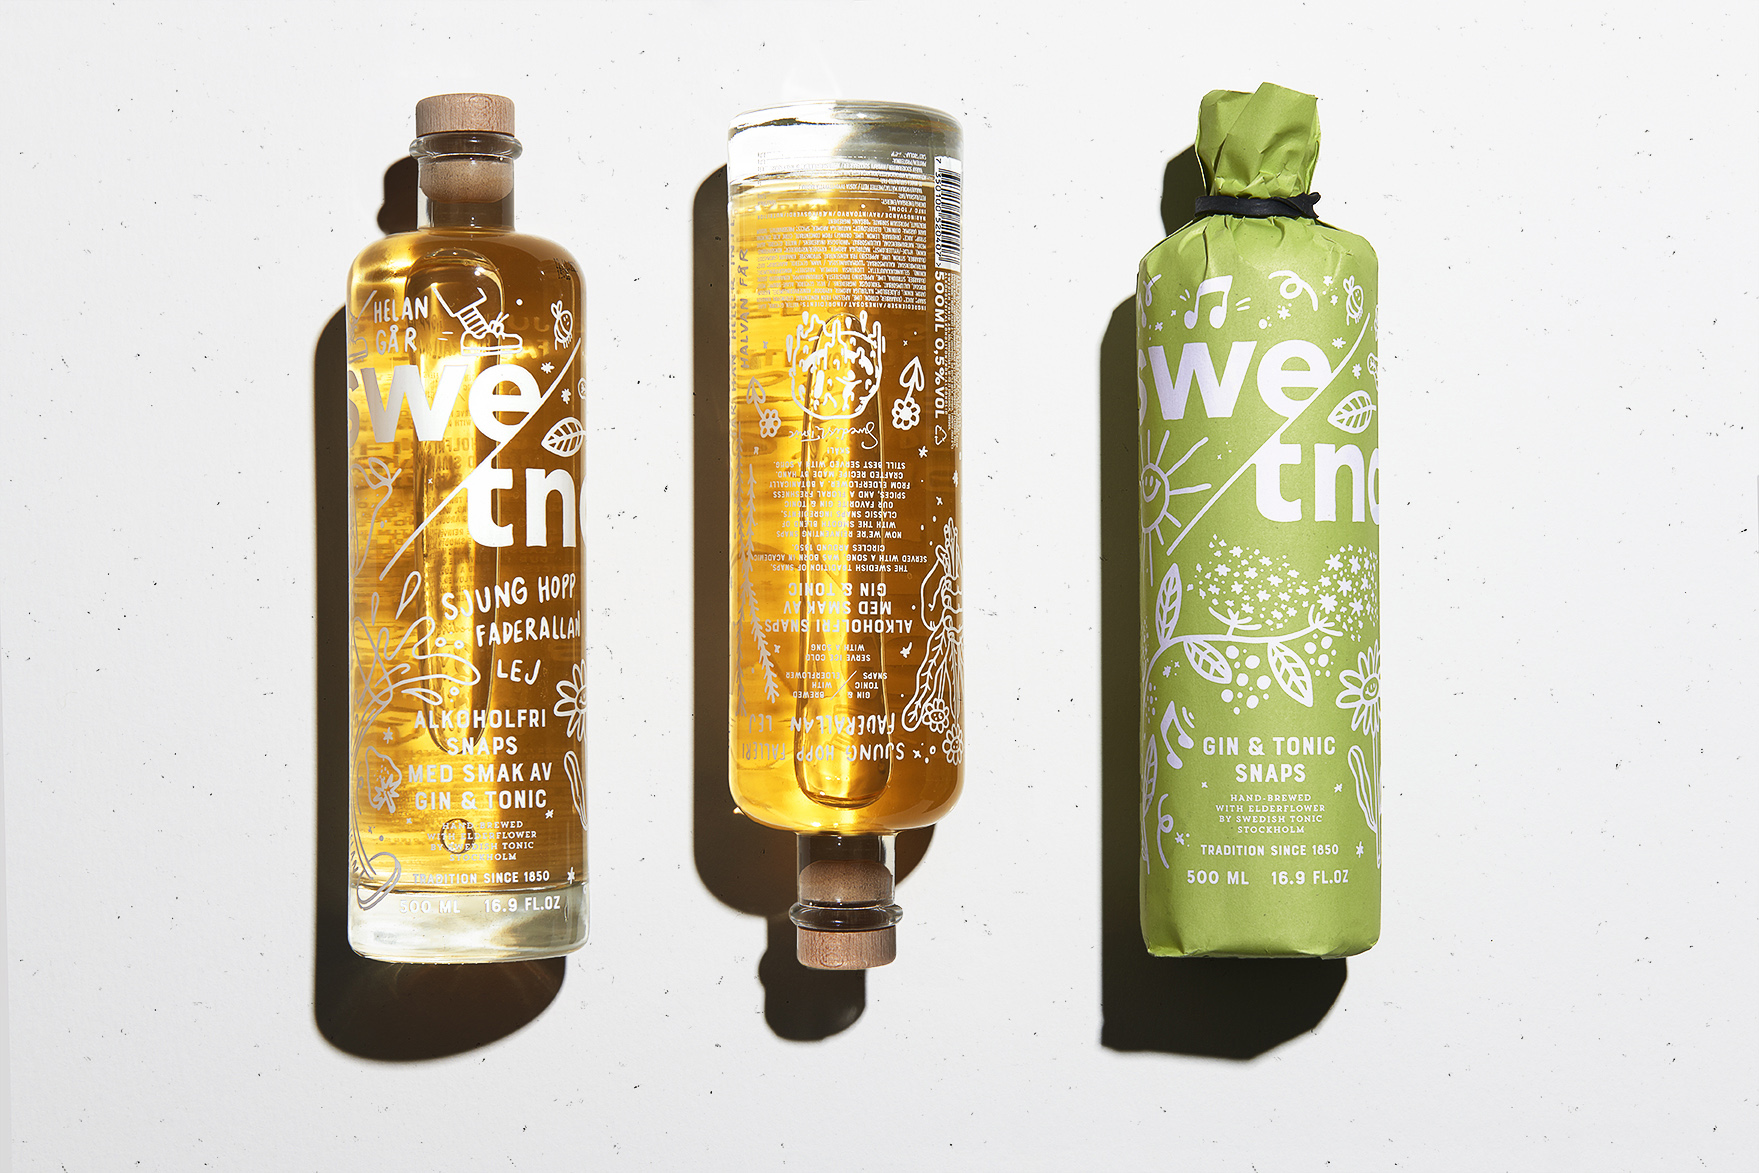 SWE/TNC, a New Take on Snaps by Pond Design